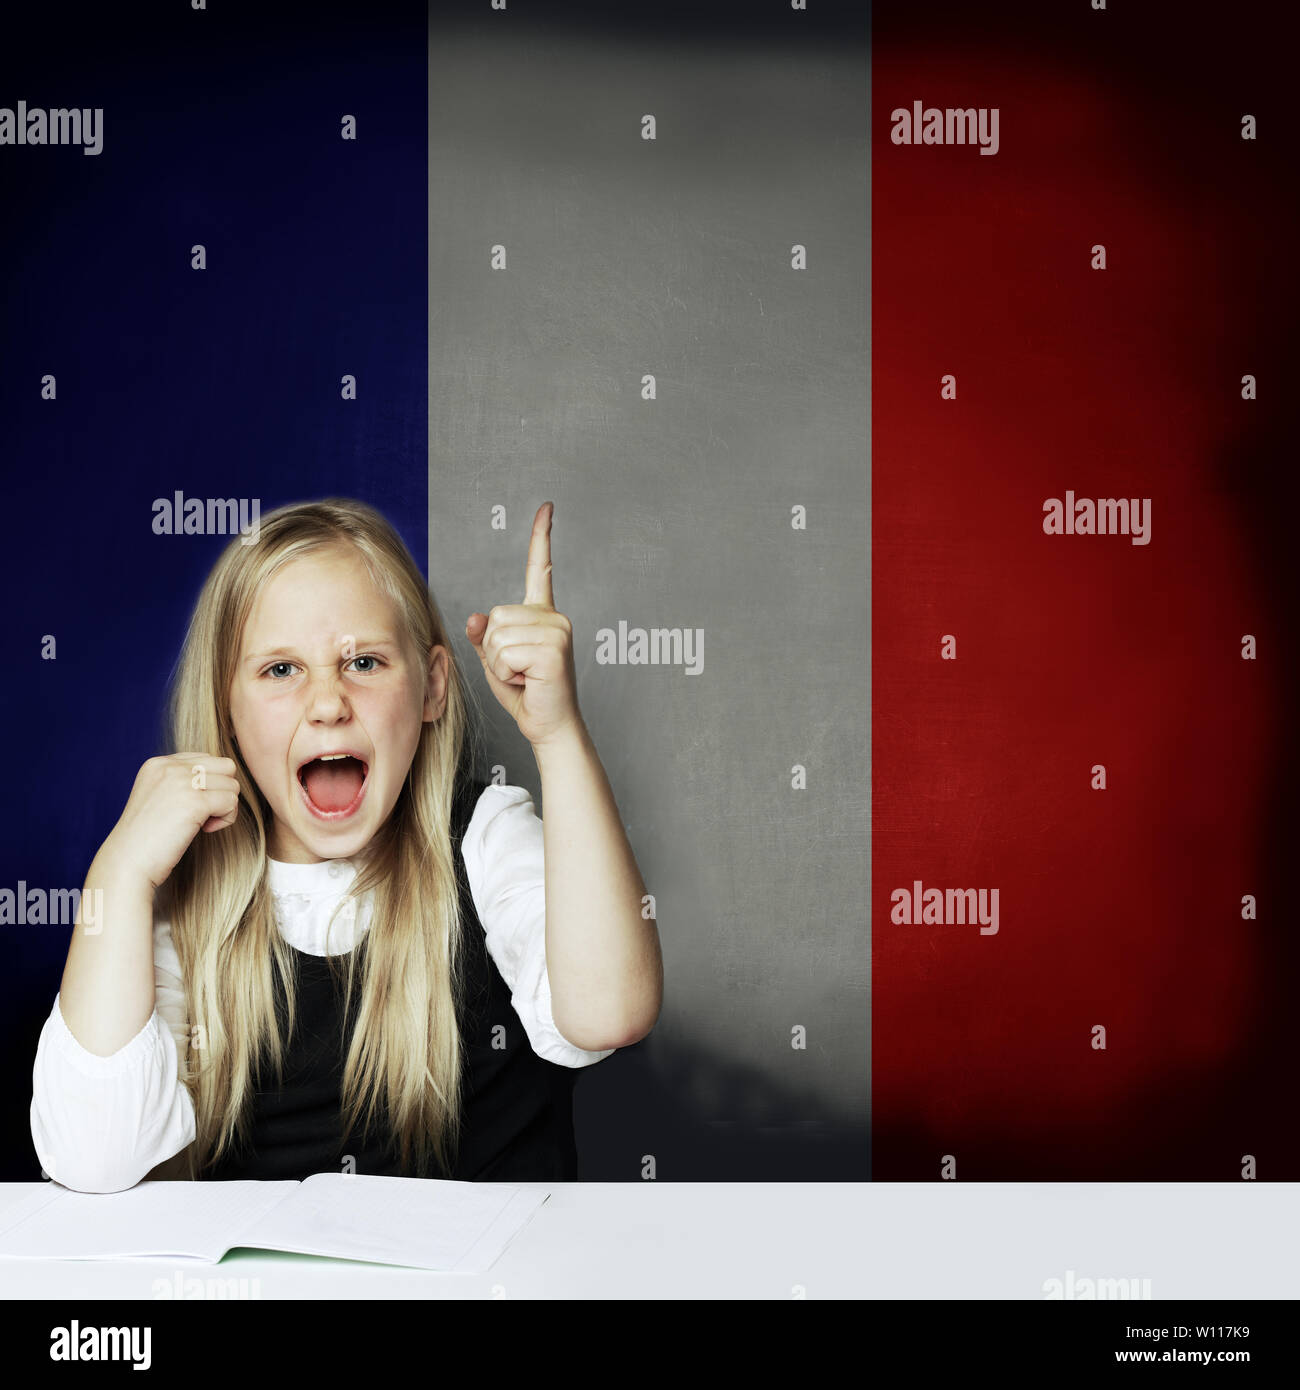 Learn french language concept. Happy child girl student pointing up and having fun against the France flag background. - Stock Image